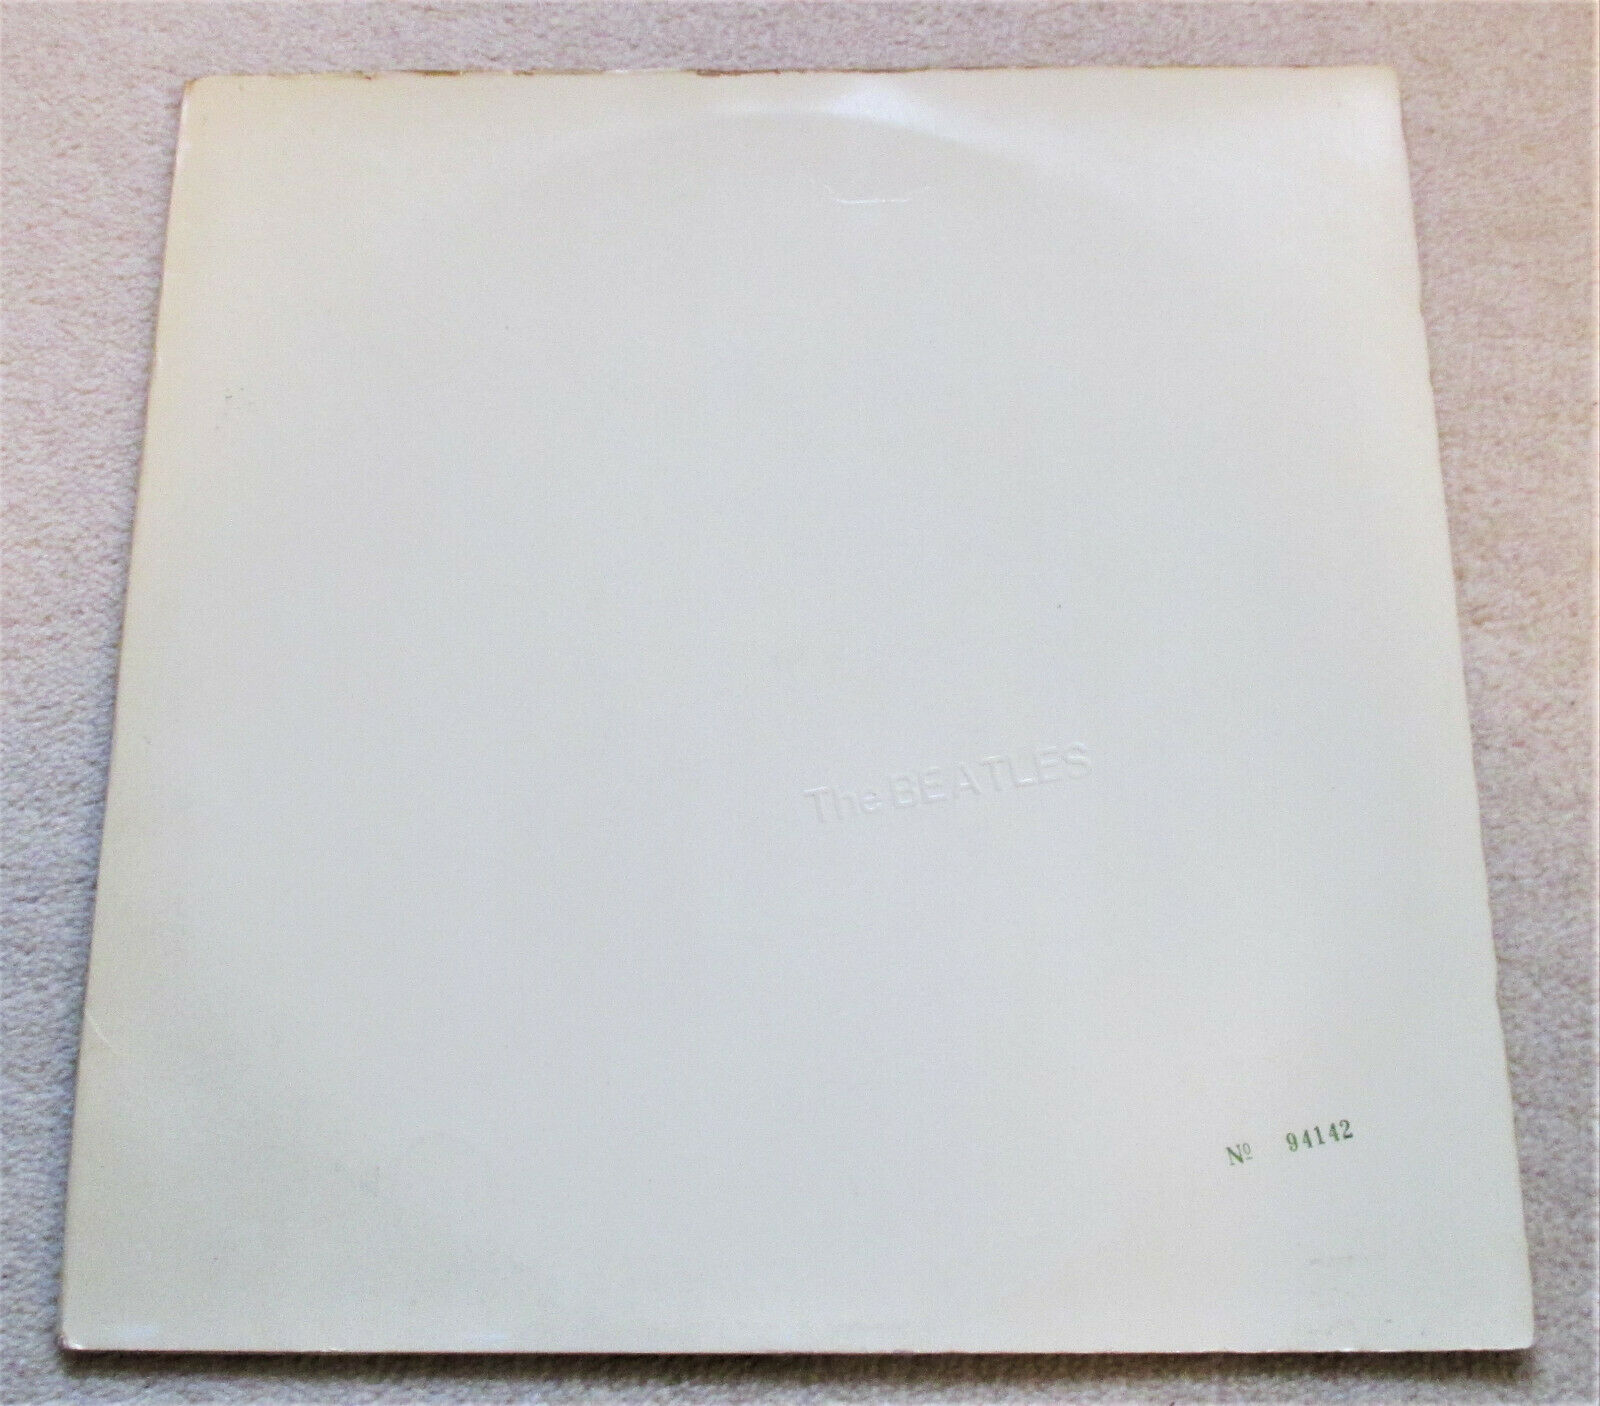 THE BEATLES / WHITE ALBUM GATEFOLD LP / NO 94142 / OZ APPLE STEREO / POSTER INCL